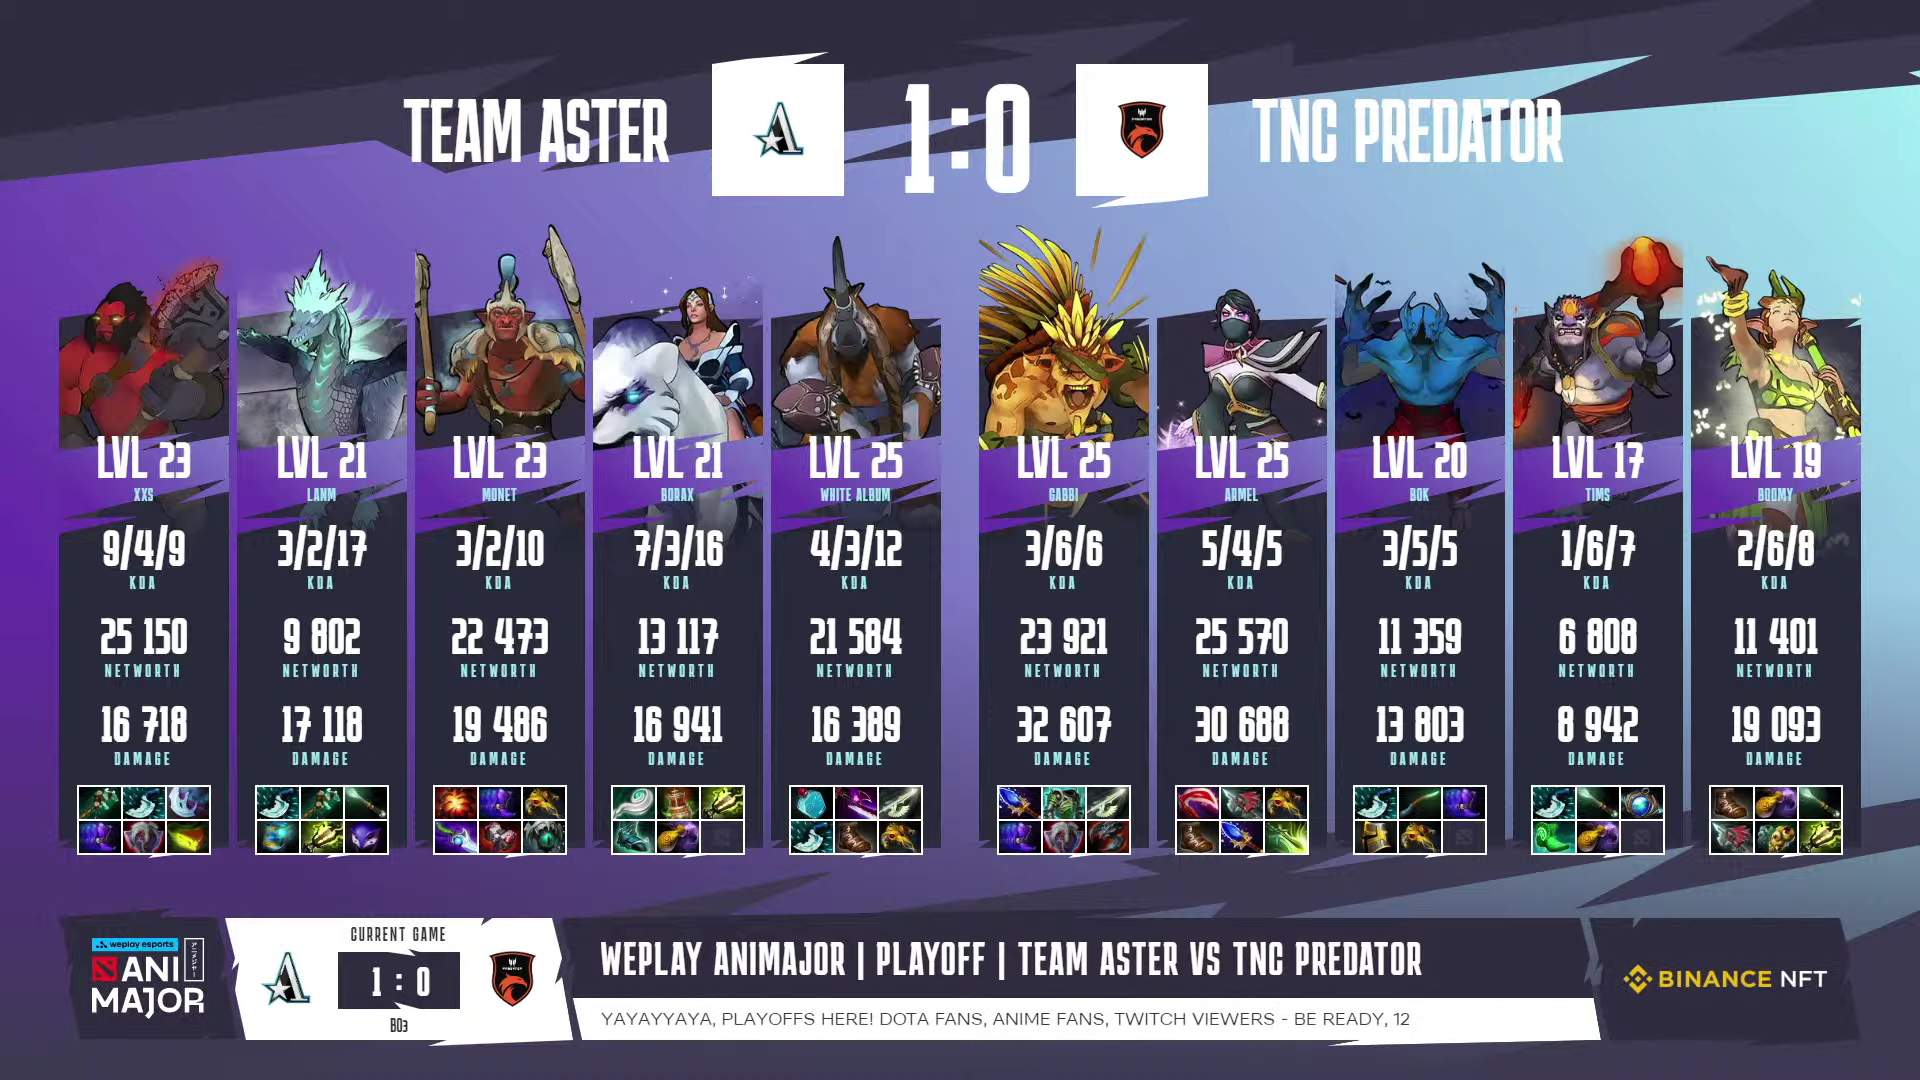 TNC pulls off epic come-from-behind win to advance in AniMajor playoffs